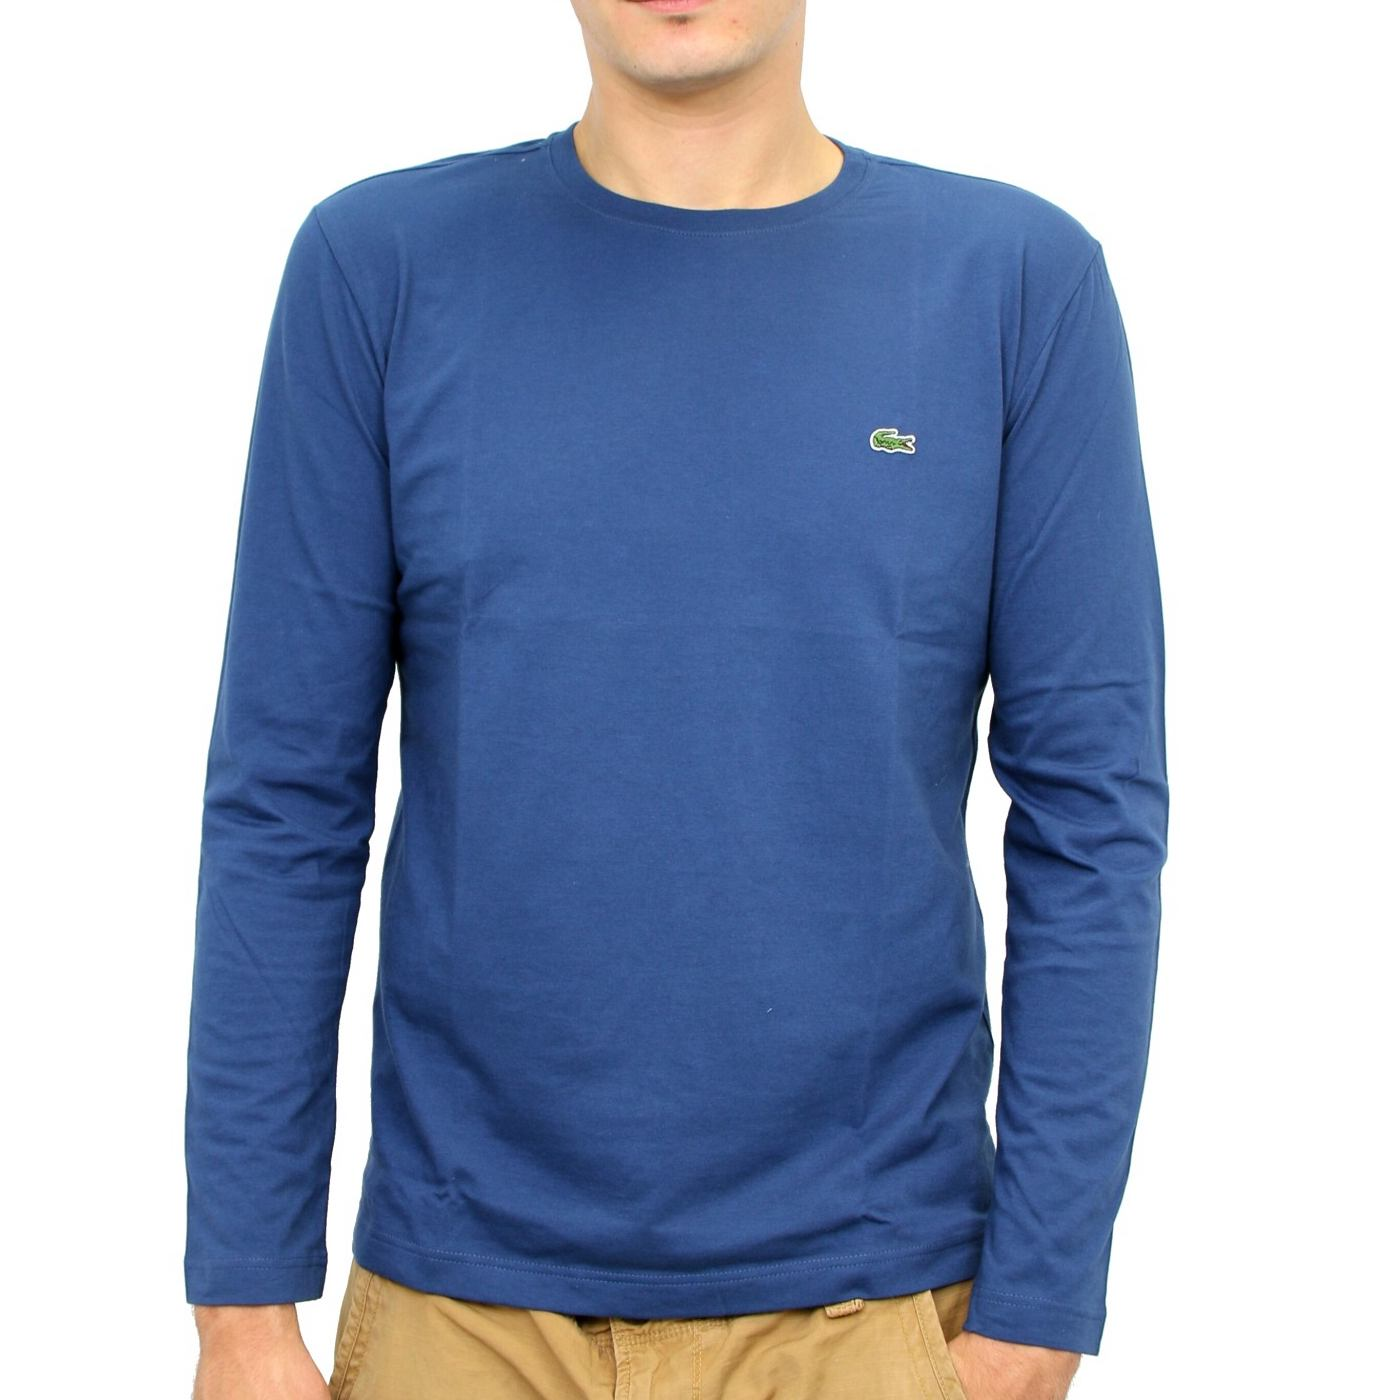 lacoste t shirt longsleeve pullover men 39 s various colors ebay. Black Bedroom Furniture Sets. Home Design Ideas